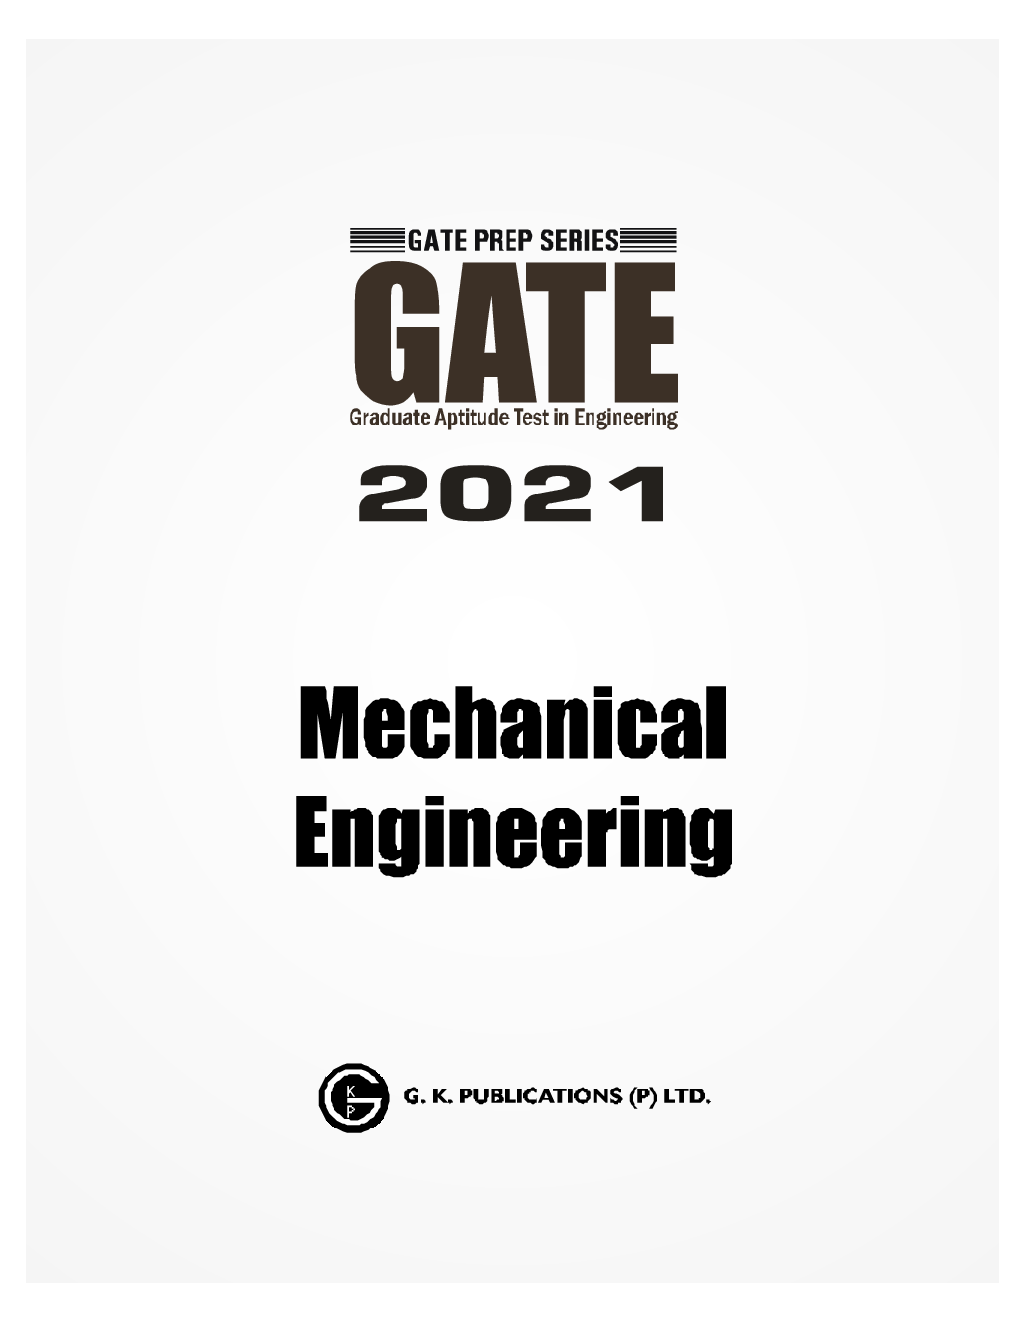 GATE 2021 Mechanical Engineering - Guide - Page 2